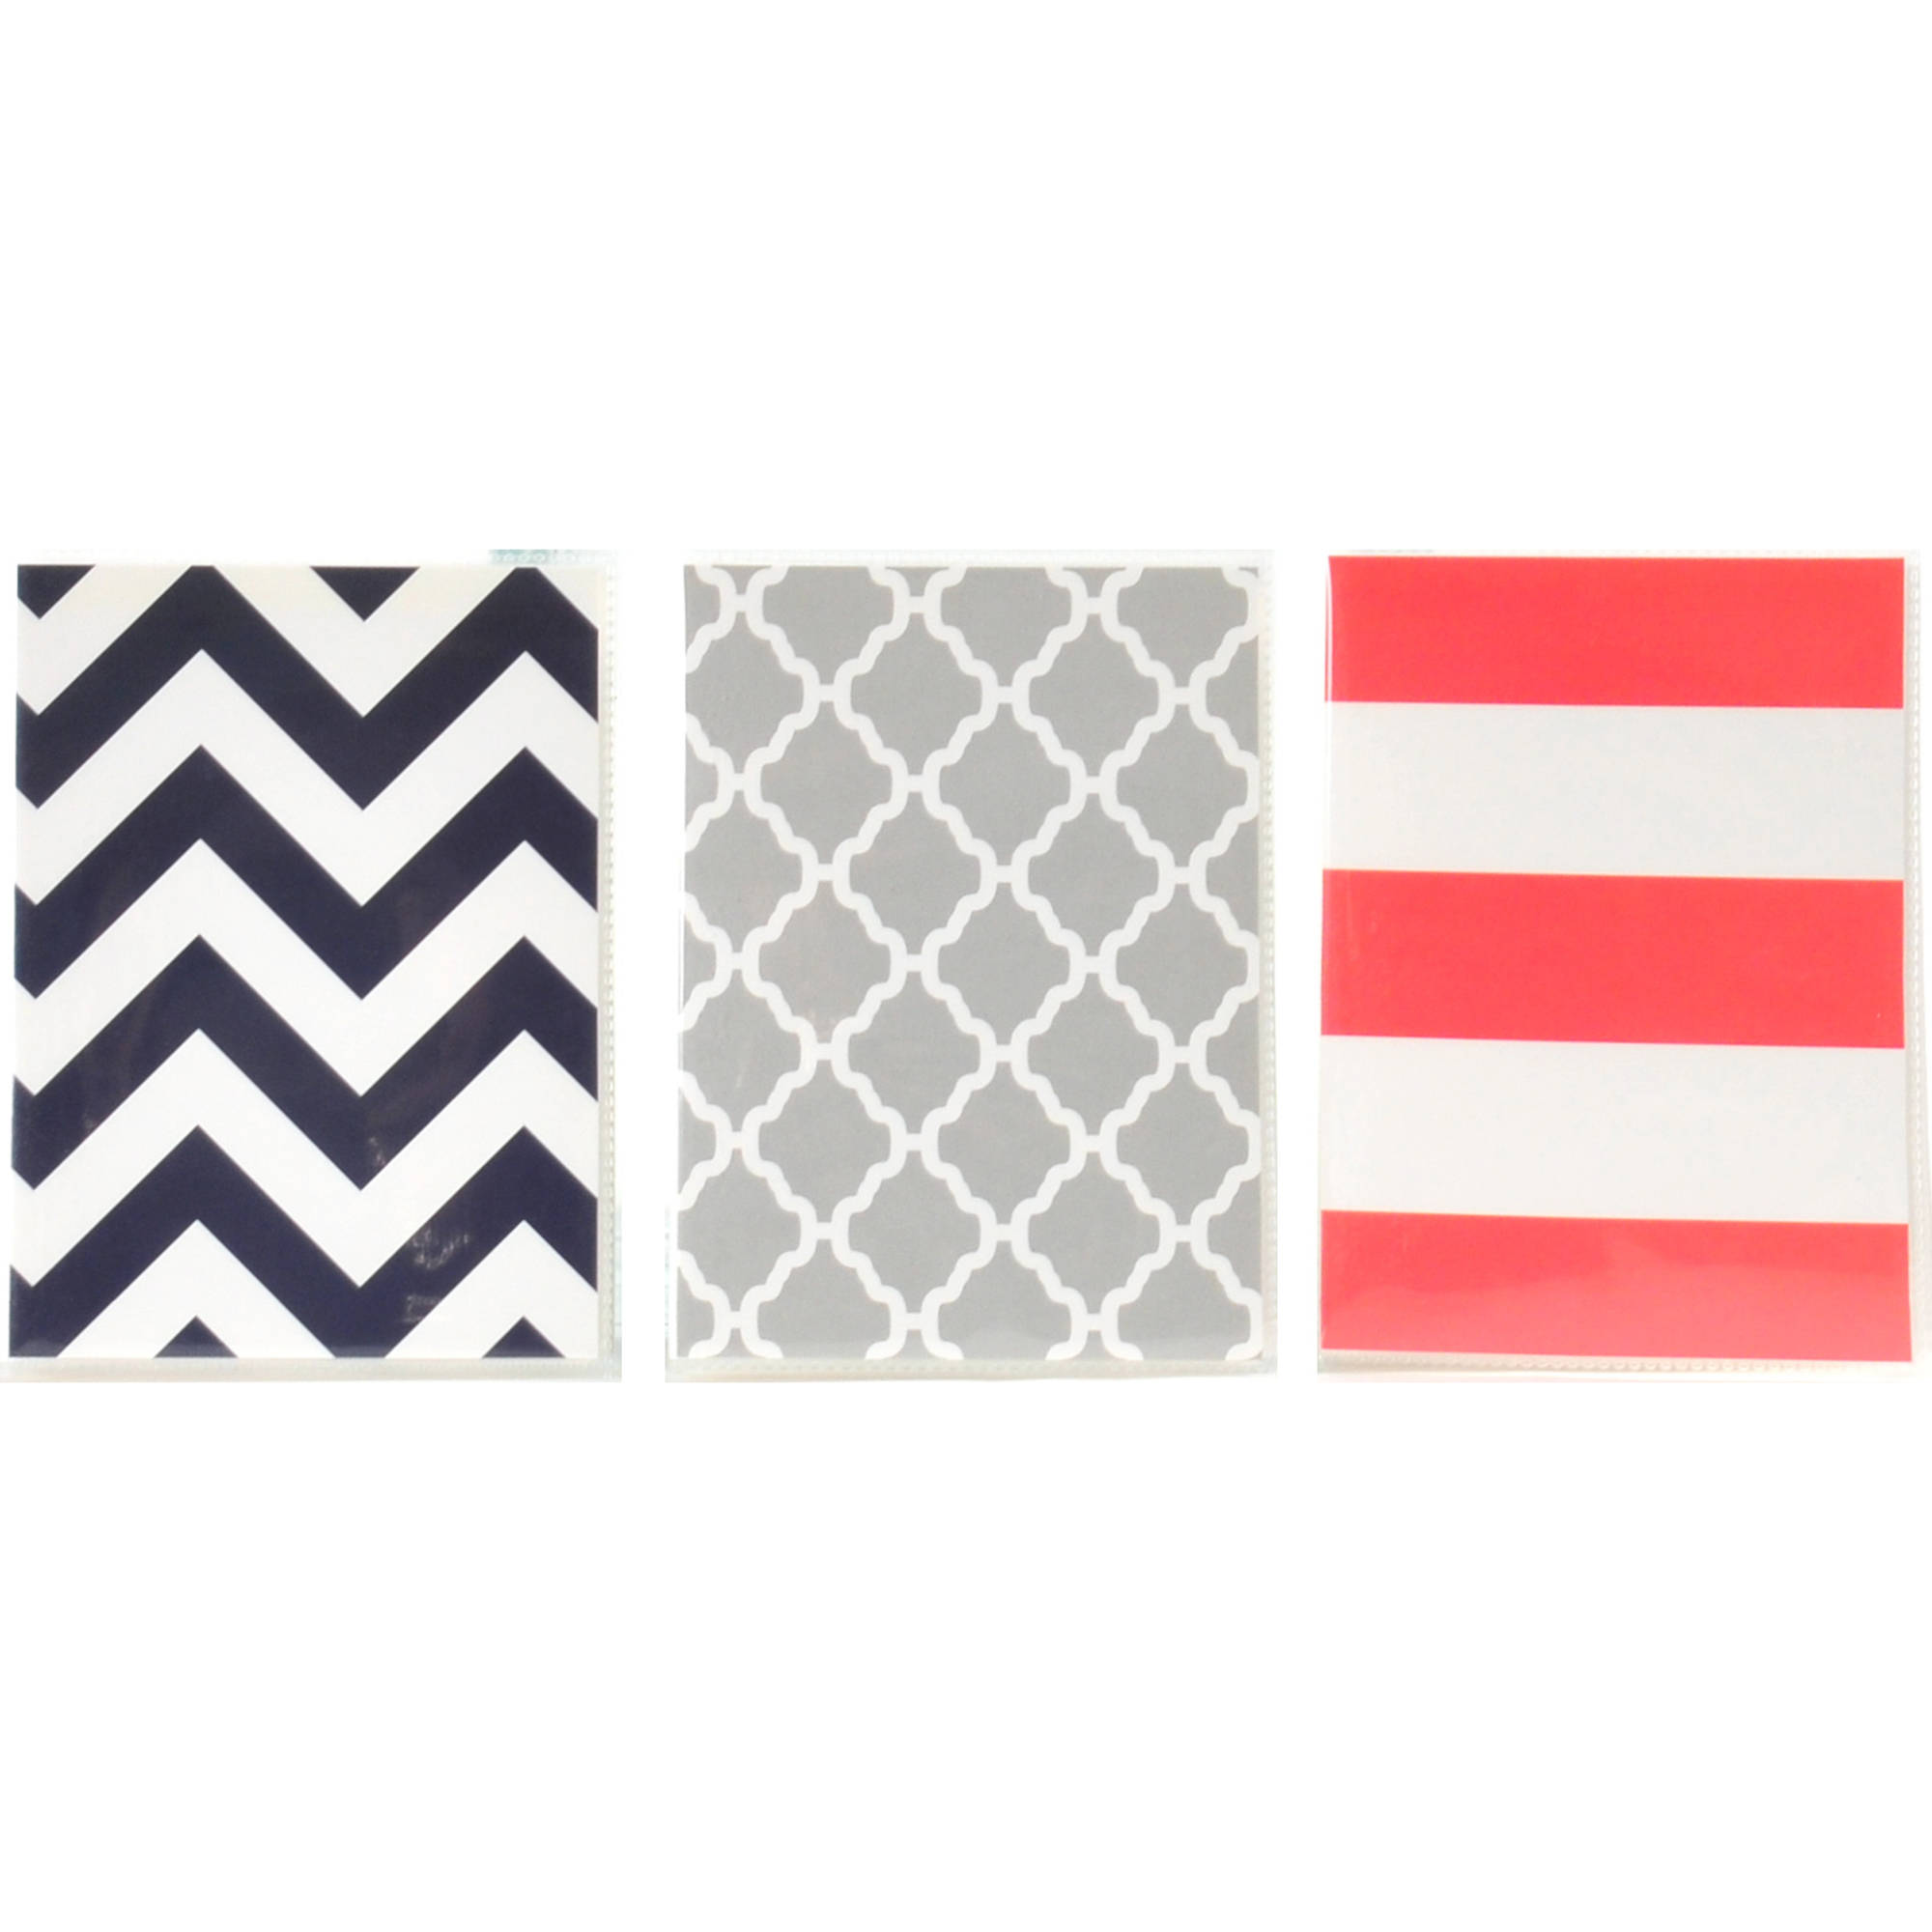 Pinnacle Frames And Accents Soft Brag Patterns Album Walmartcom